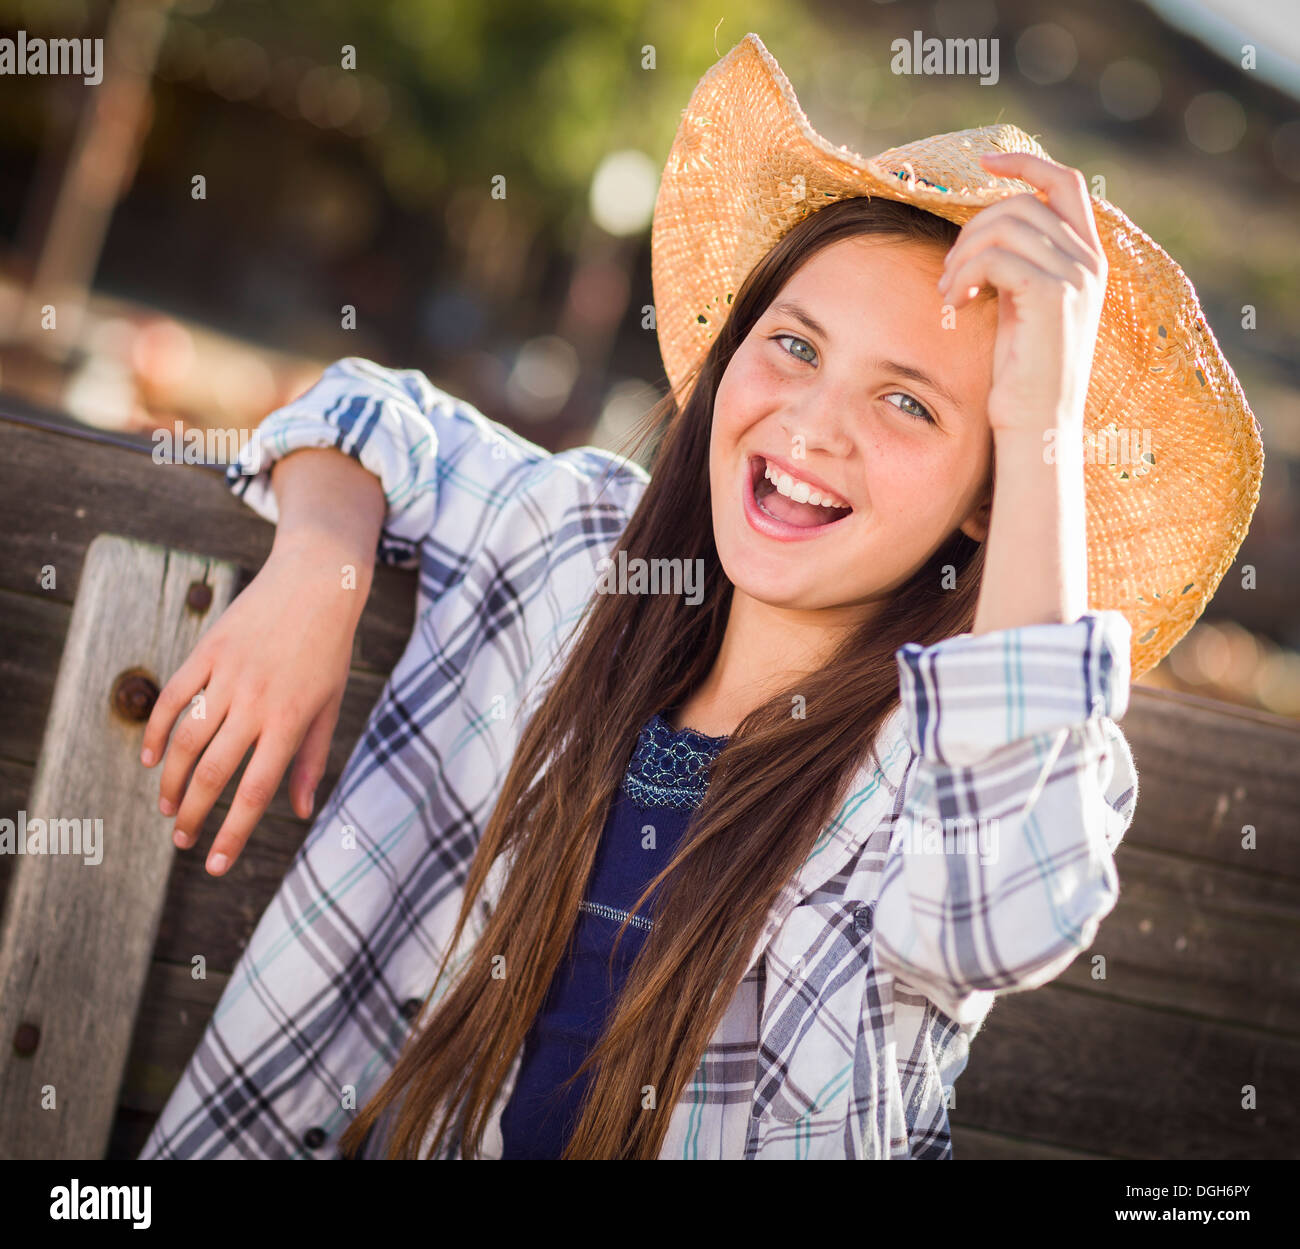 53fe6ef50ce Preteen Girl Wearing Cowboy Hat Portrait at the Pumpkin Patch in a Rustic  Setting.